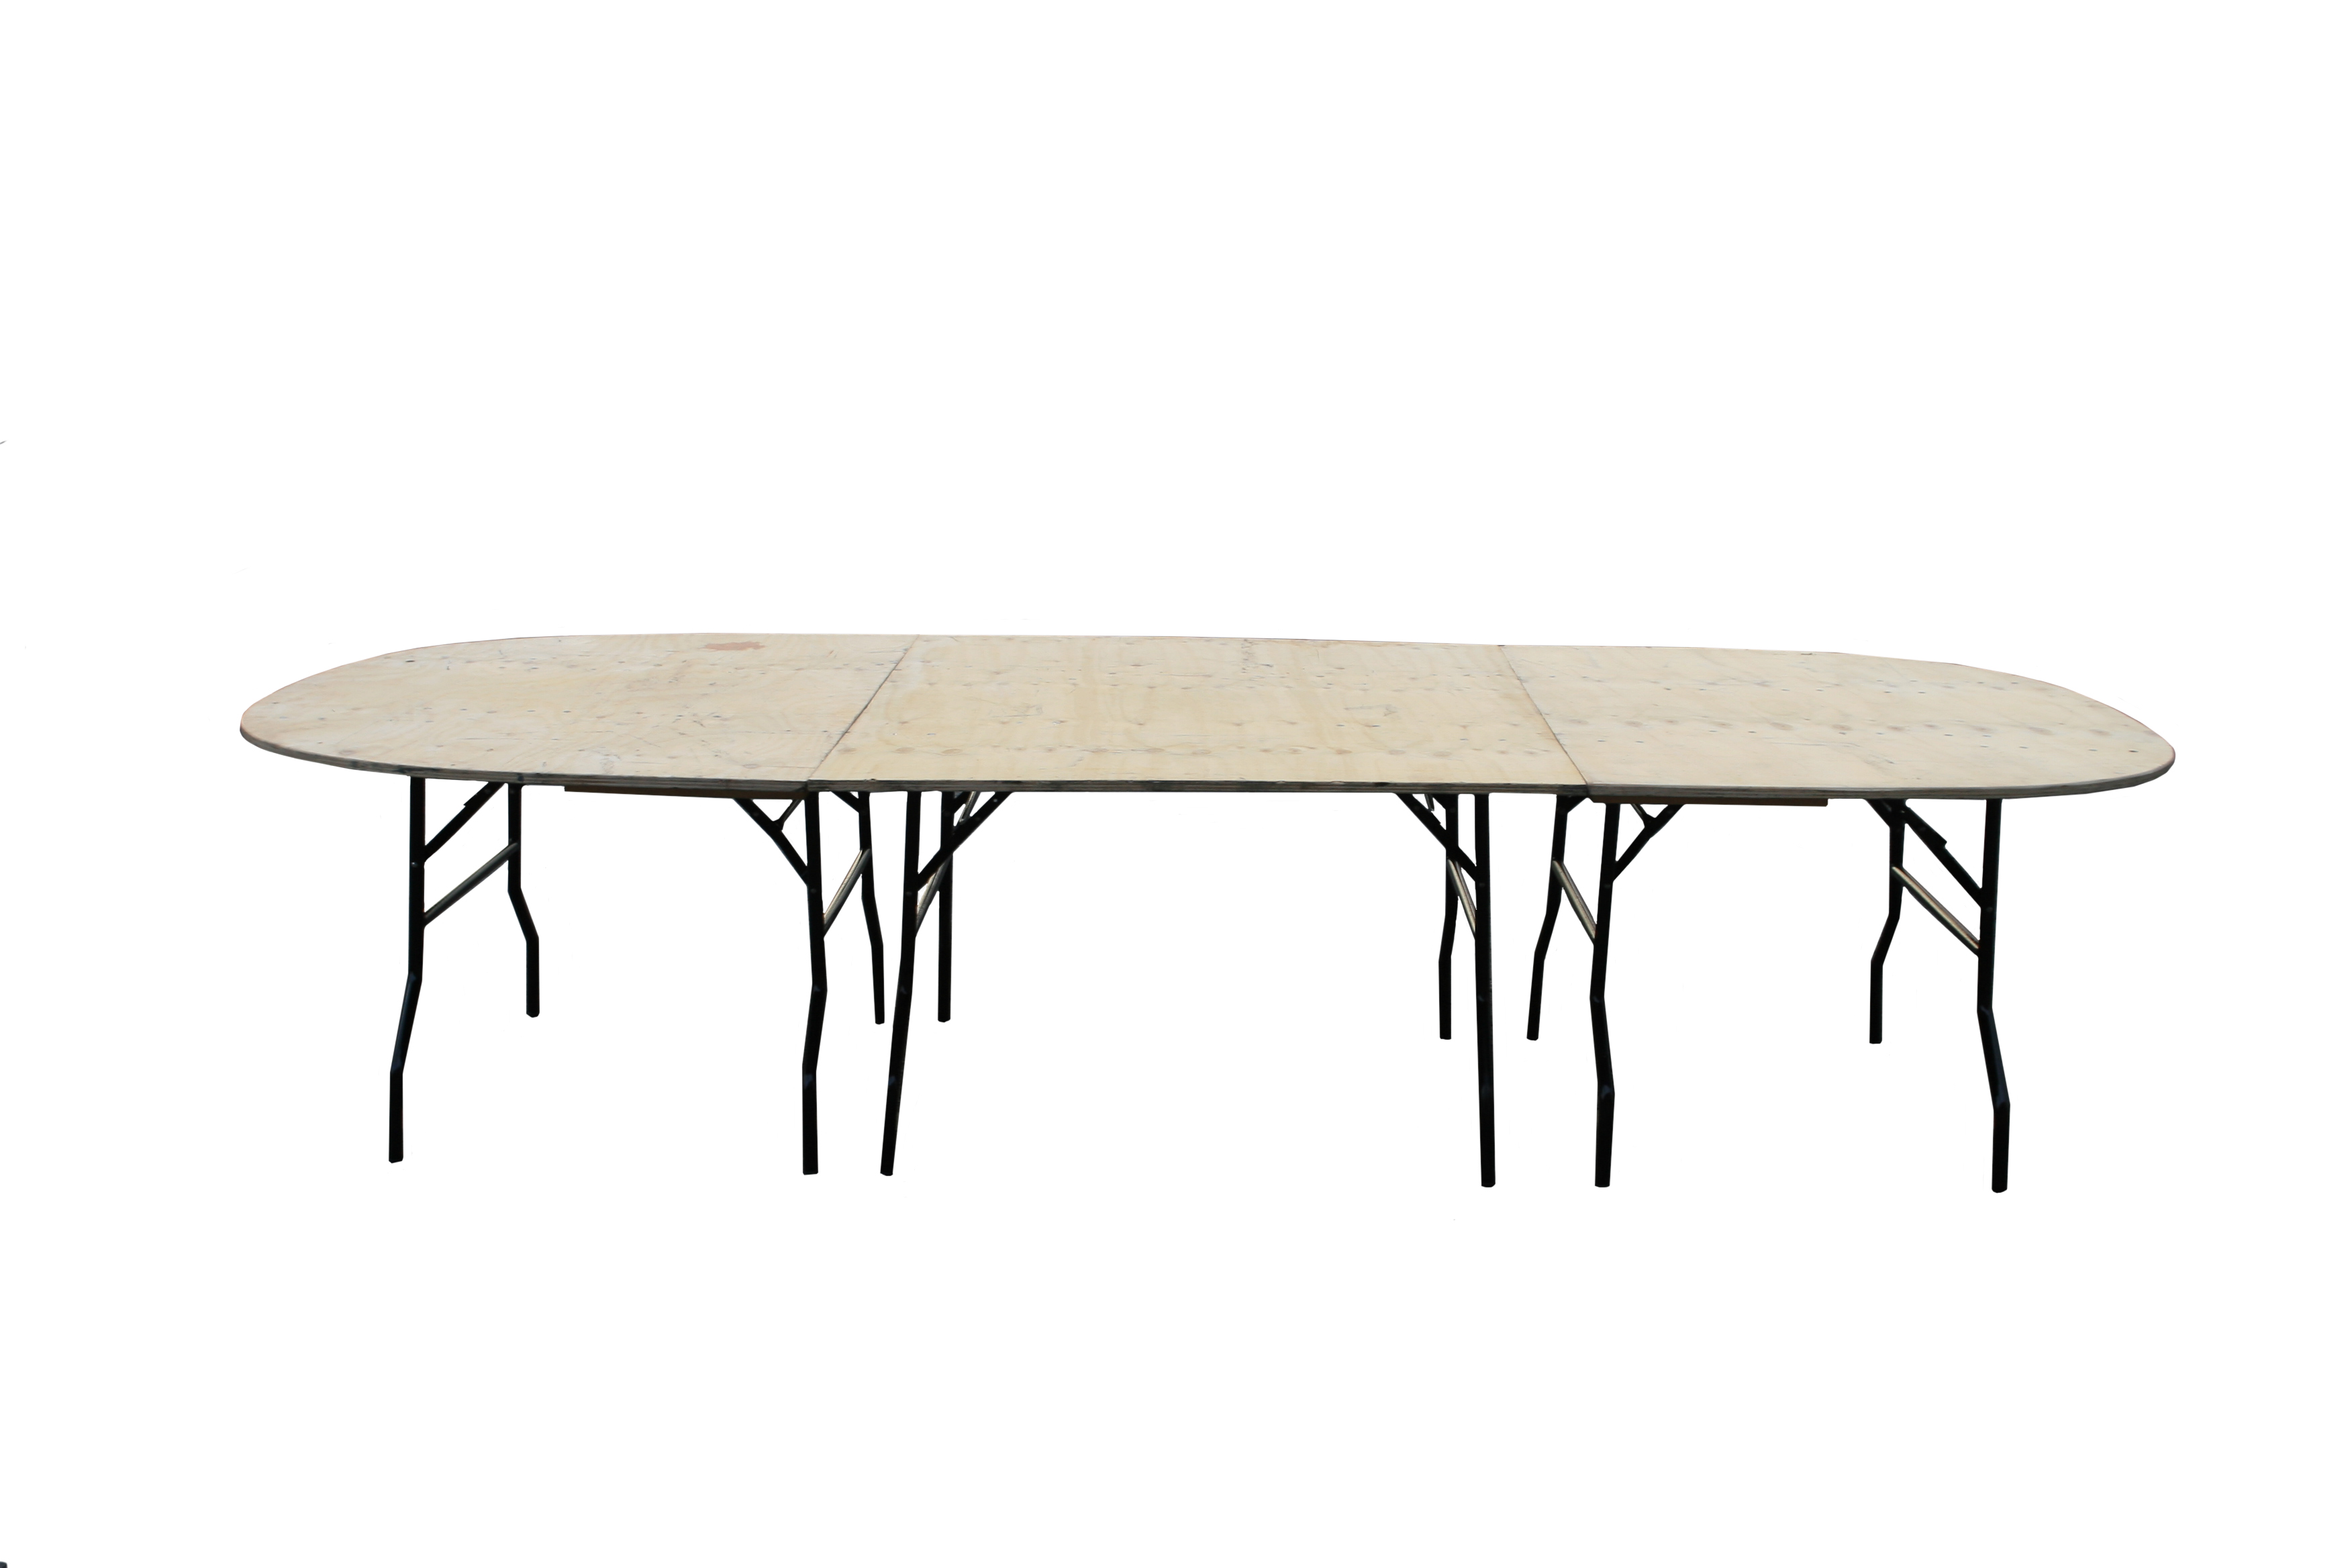 Large oval table constructed from plywood table tops and metal folding legs be event